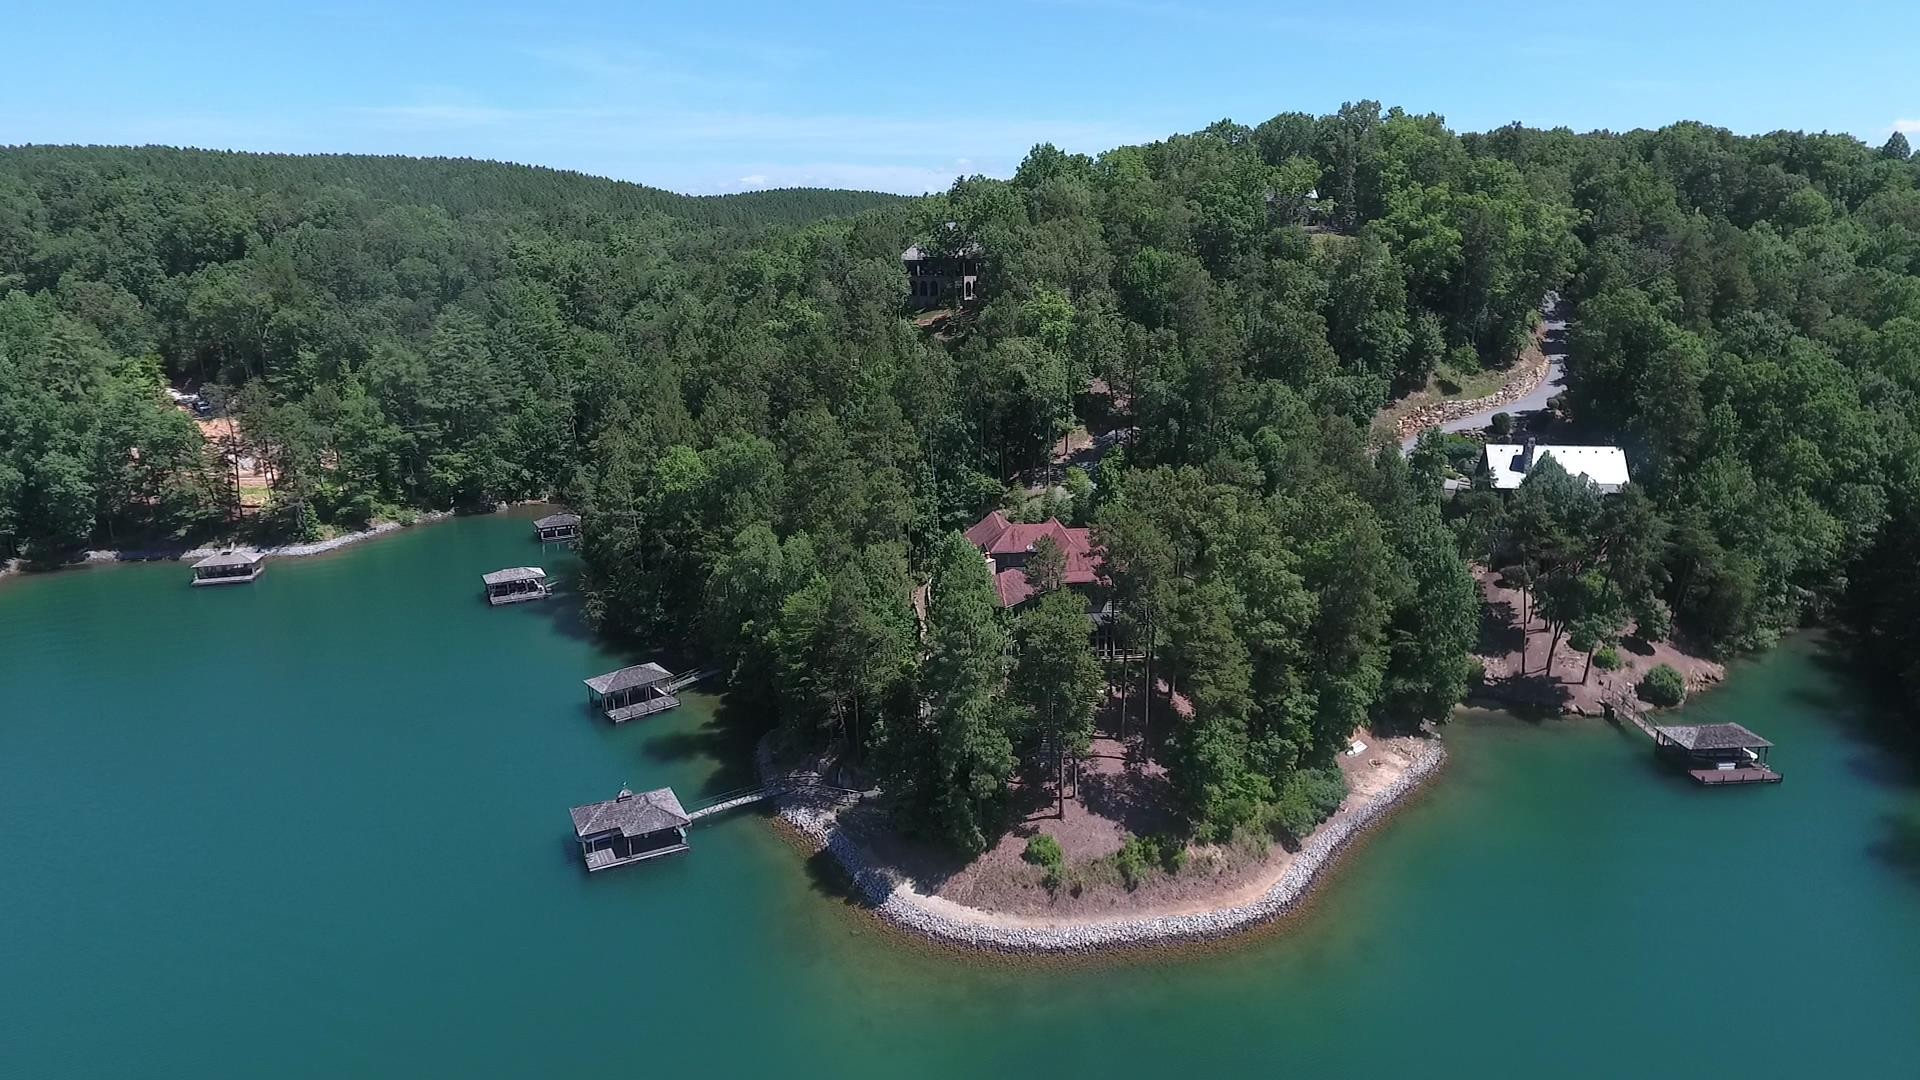 Einfamilienhaus für Verkauf beim Expansive Views from this Waterfront Home by Keith Summerour 136 S. Falls Road The Reserve At Lake Keowee, Sunset, South Carolina, 29685 Vereinigte Staaten